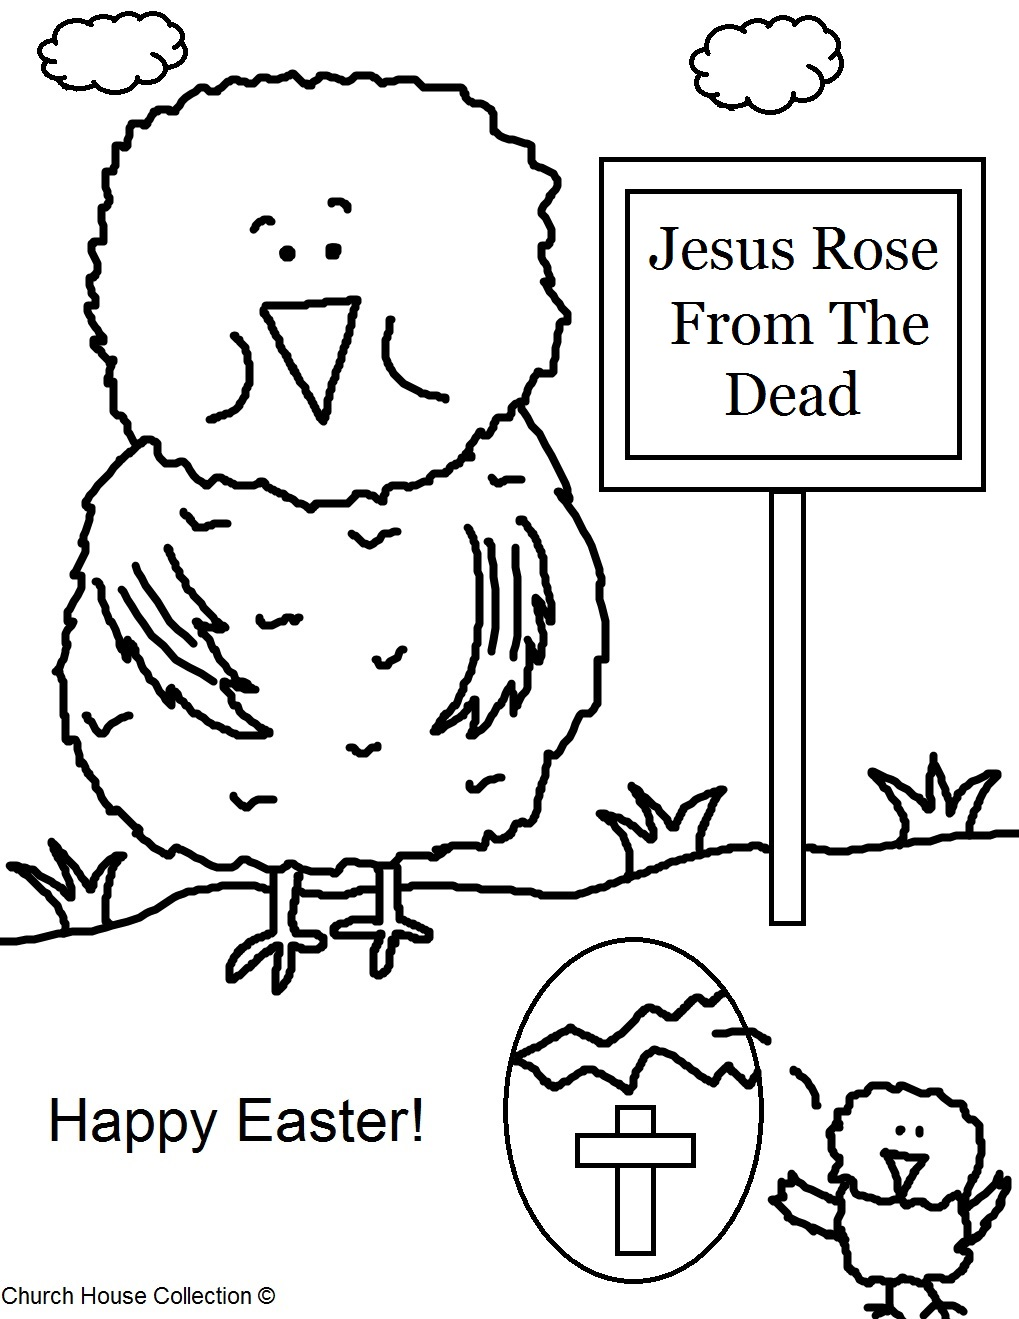 Church House Collection Blog Cave City School Easter Easter Sunday Coloring Pages